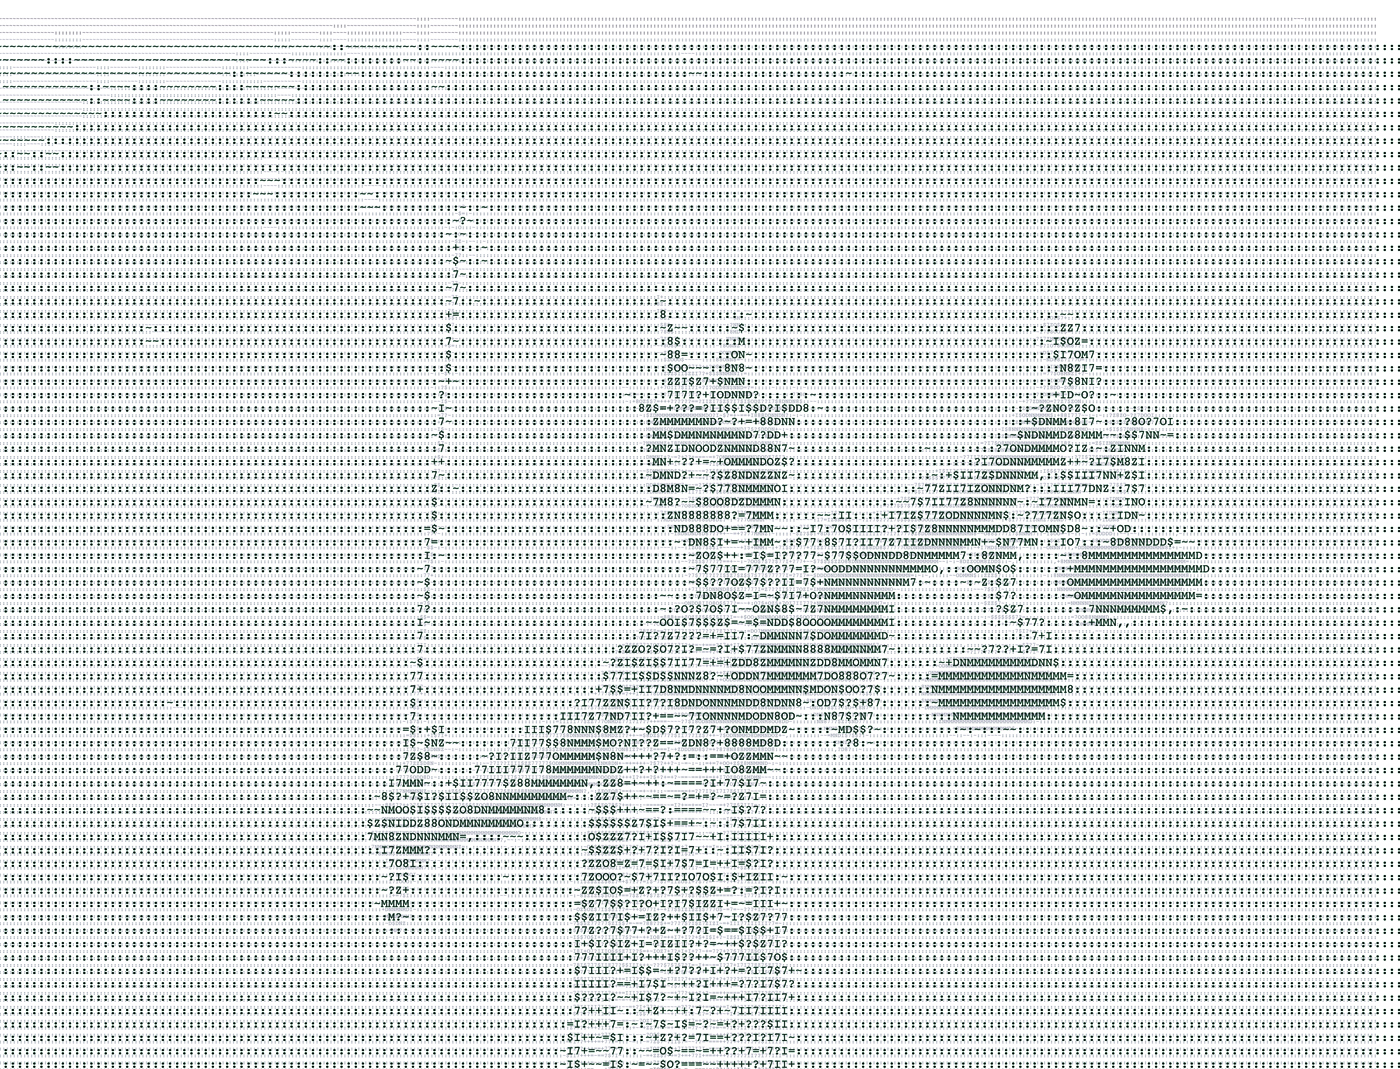 Glassgiant.com - JPEG / JPG Picture to ASCII Art Generator